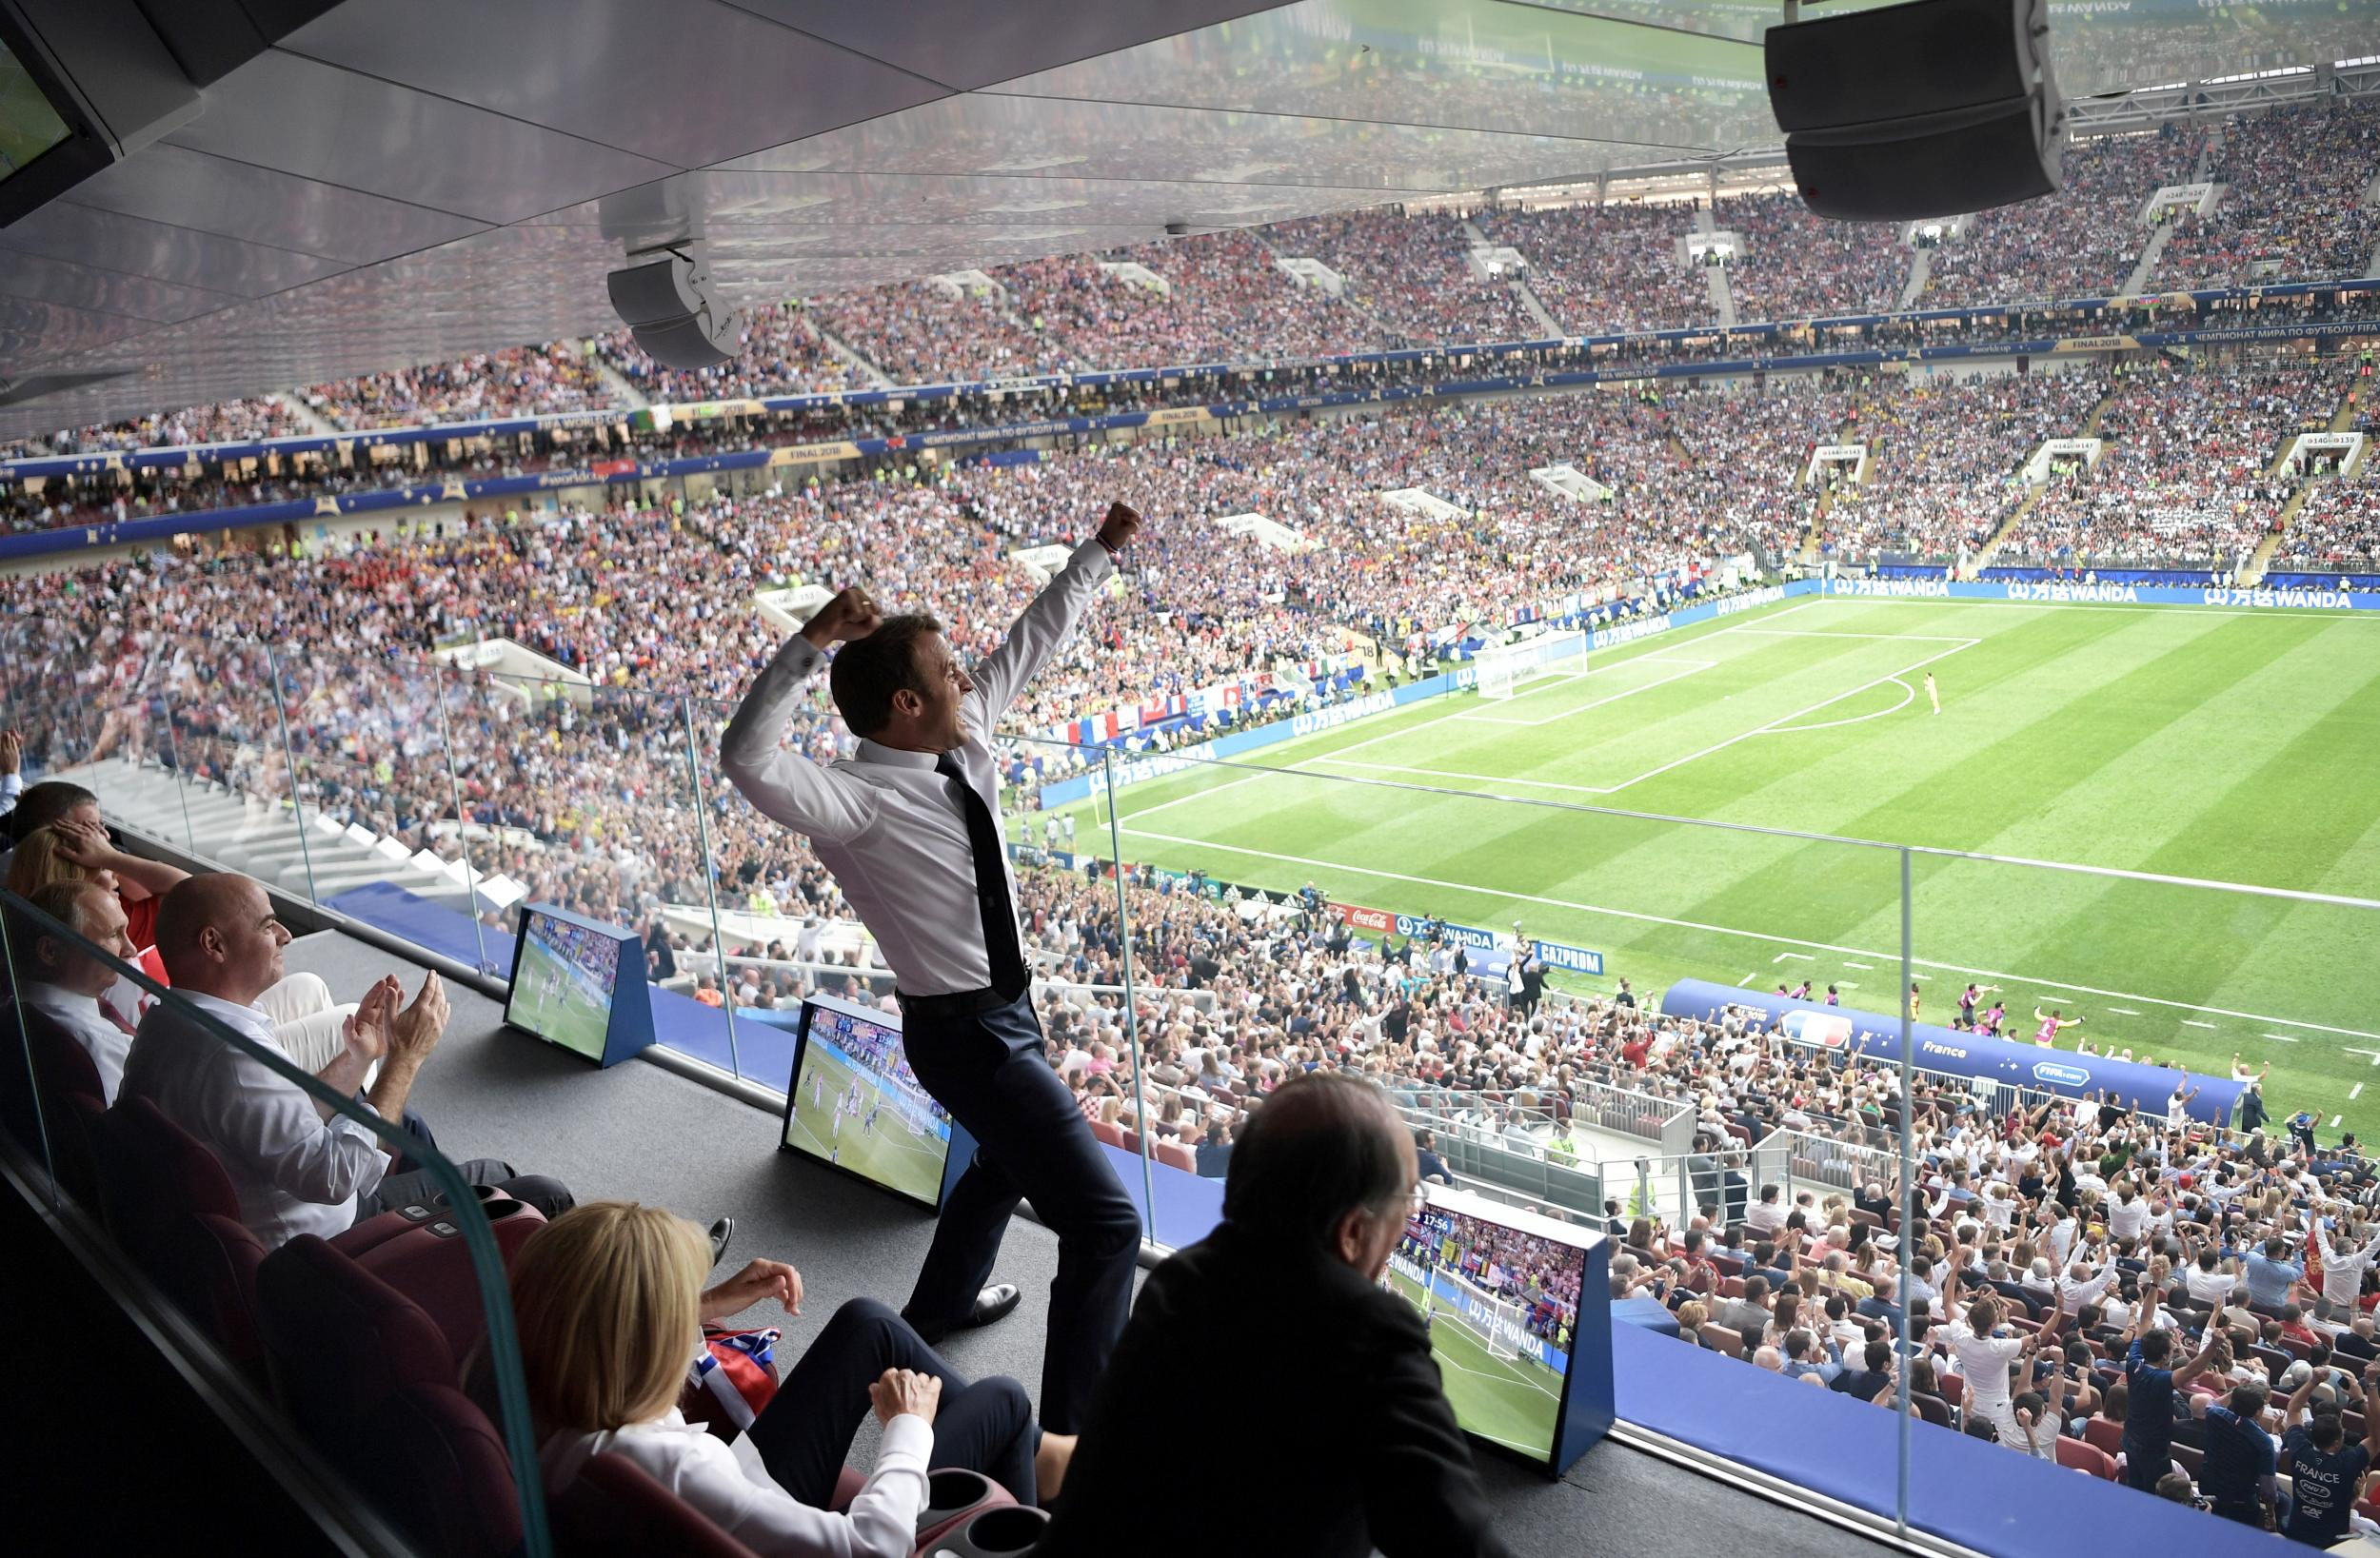 World Cup 2018 Emmanuel Macron Hopes For Approval Rating Boost In Wake Of France Victory The Independent The Independent